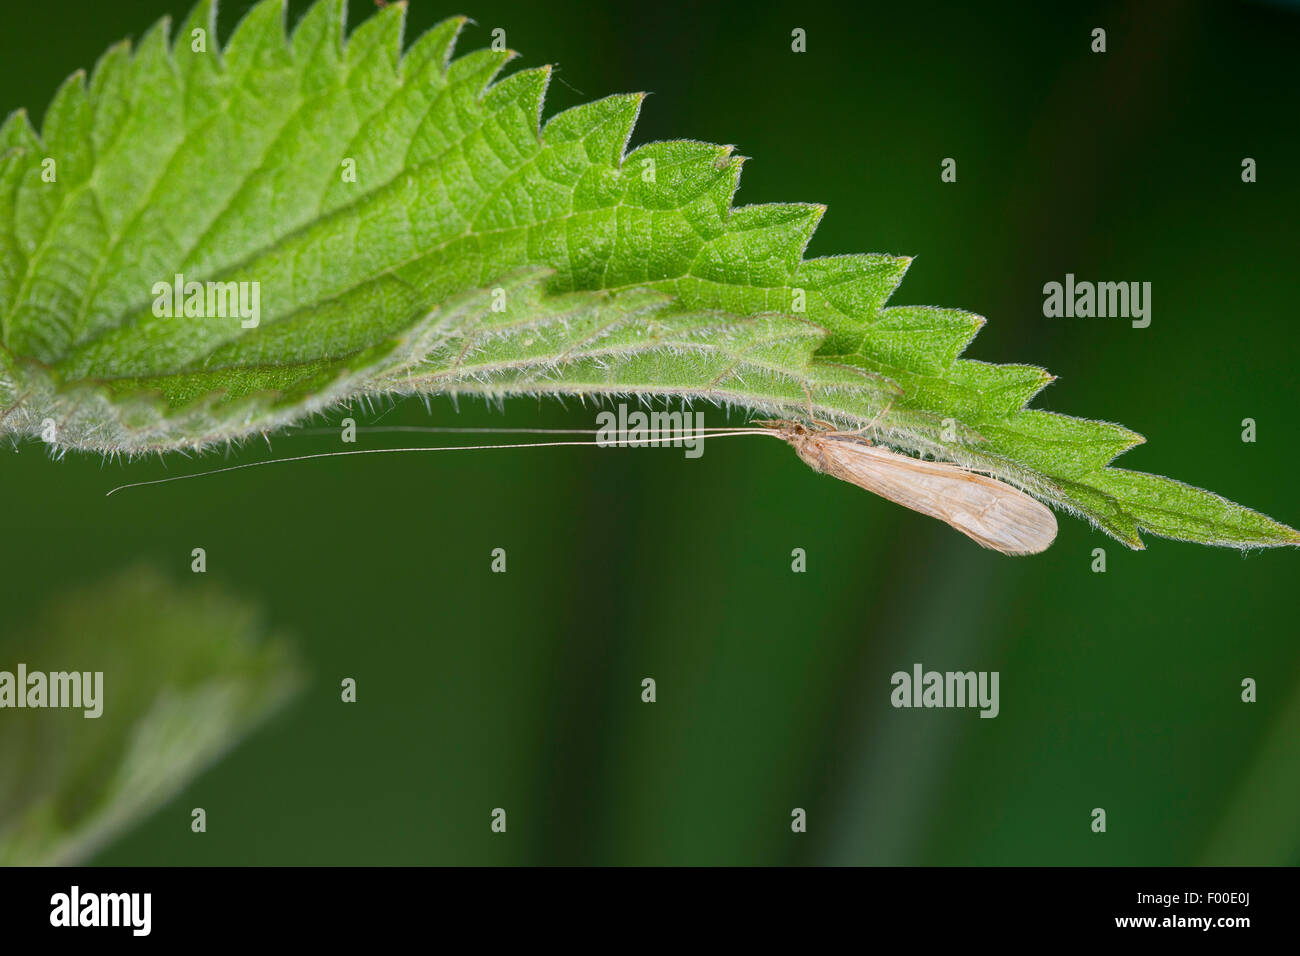 Long Horn Sedge, longhorn caddisfly, Long-horned Casemaker Caddisfly (Oecetis spec), on the underside of a leaf - Stock Image